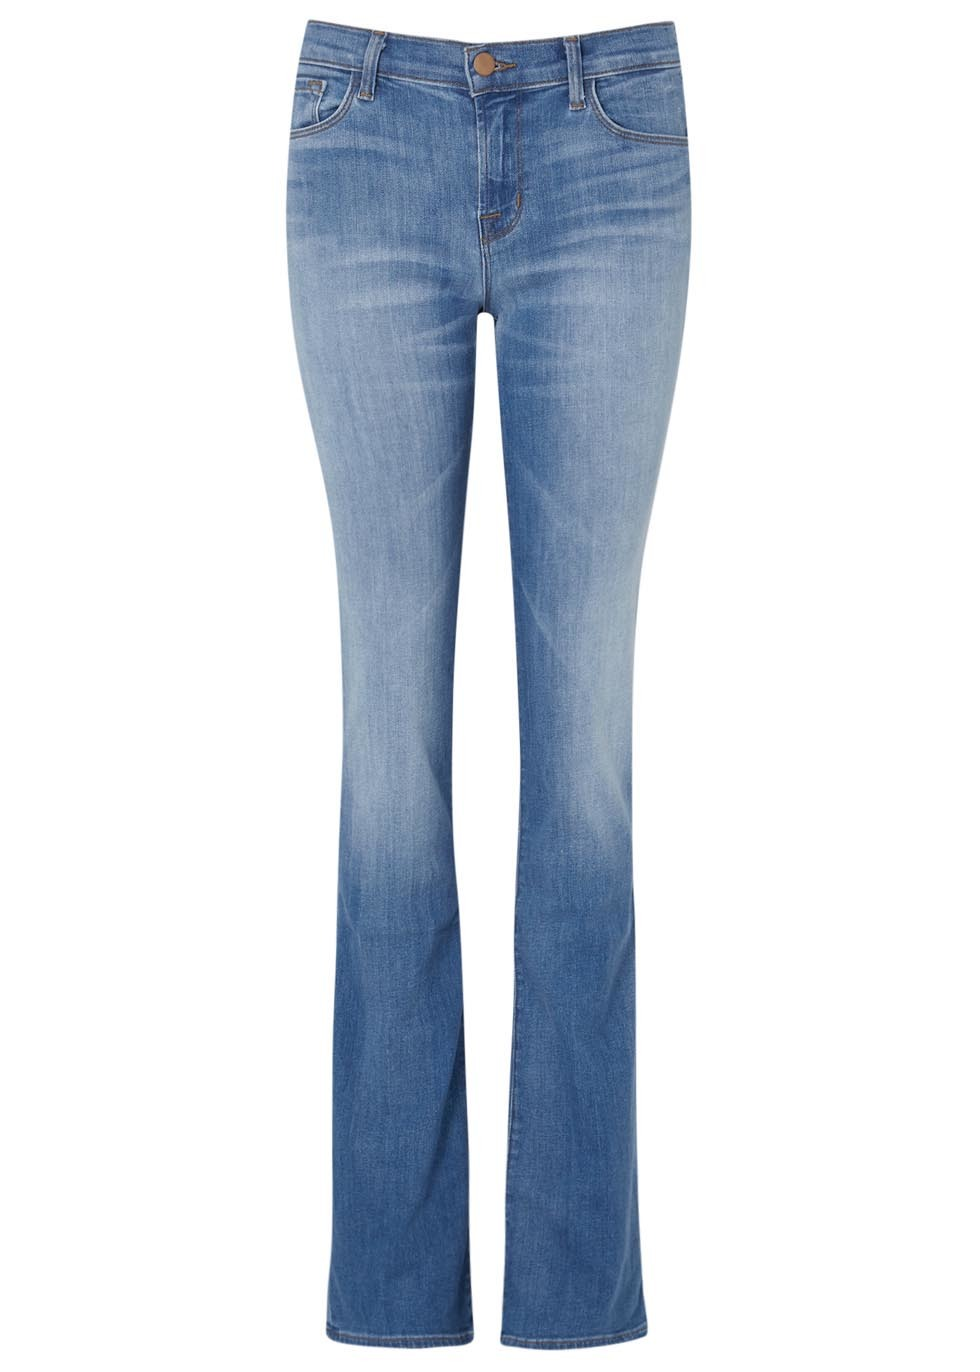 Byra Blue Flared Jeans - style: bootcut; length: standard; pattern: plain; pocket detail: traditional 5 pocket; waist: mid/regular rise; predominant colour: denim; occasions: casual; fibres: cotton - stretch; jeans detail: whiskering, shading down centre of thigh; texture group: denim; pattern type: fabric; season: s/s 2016; wardrobe: basic